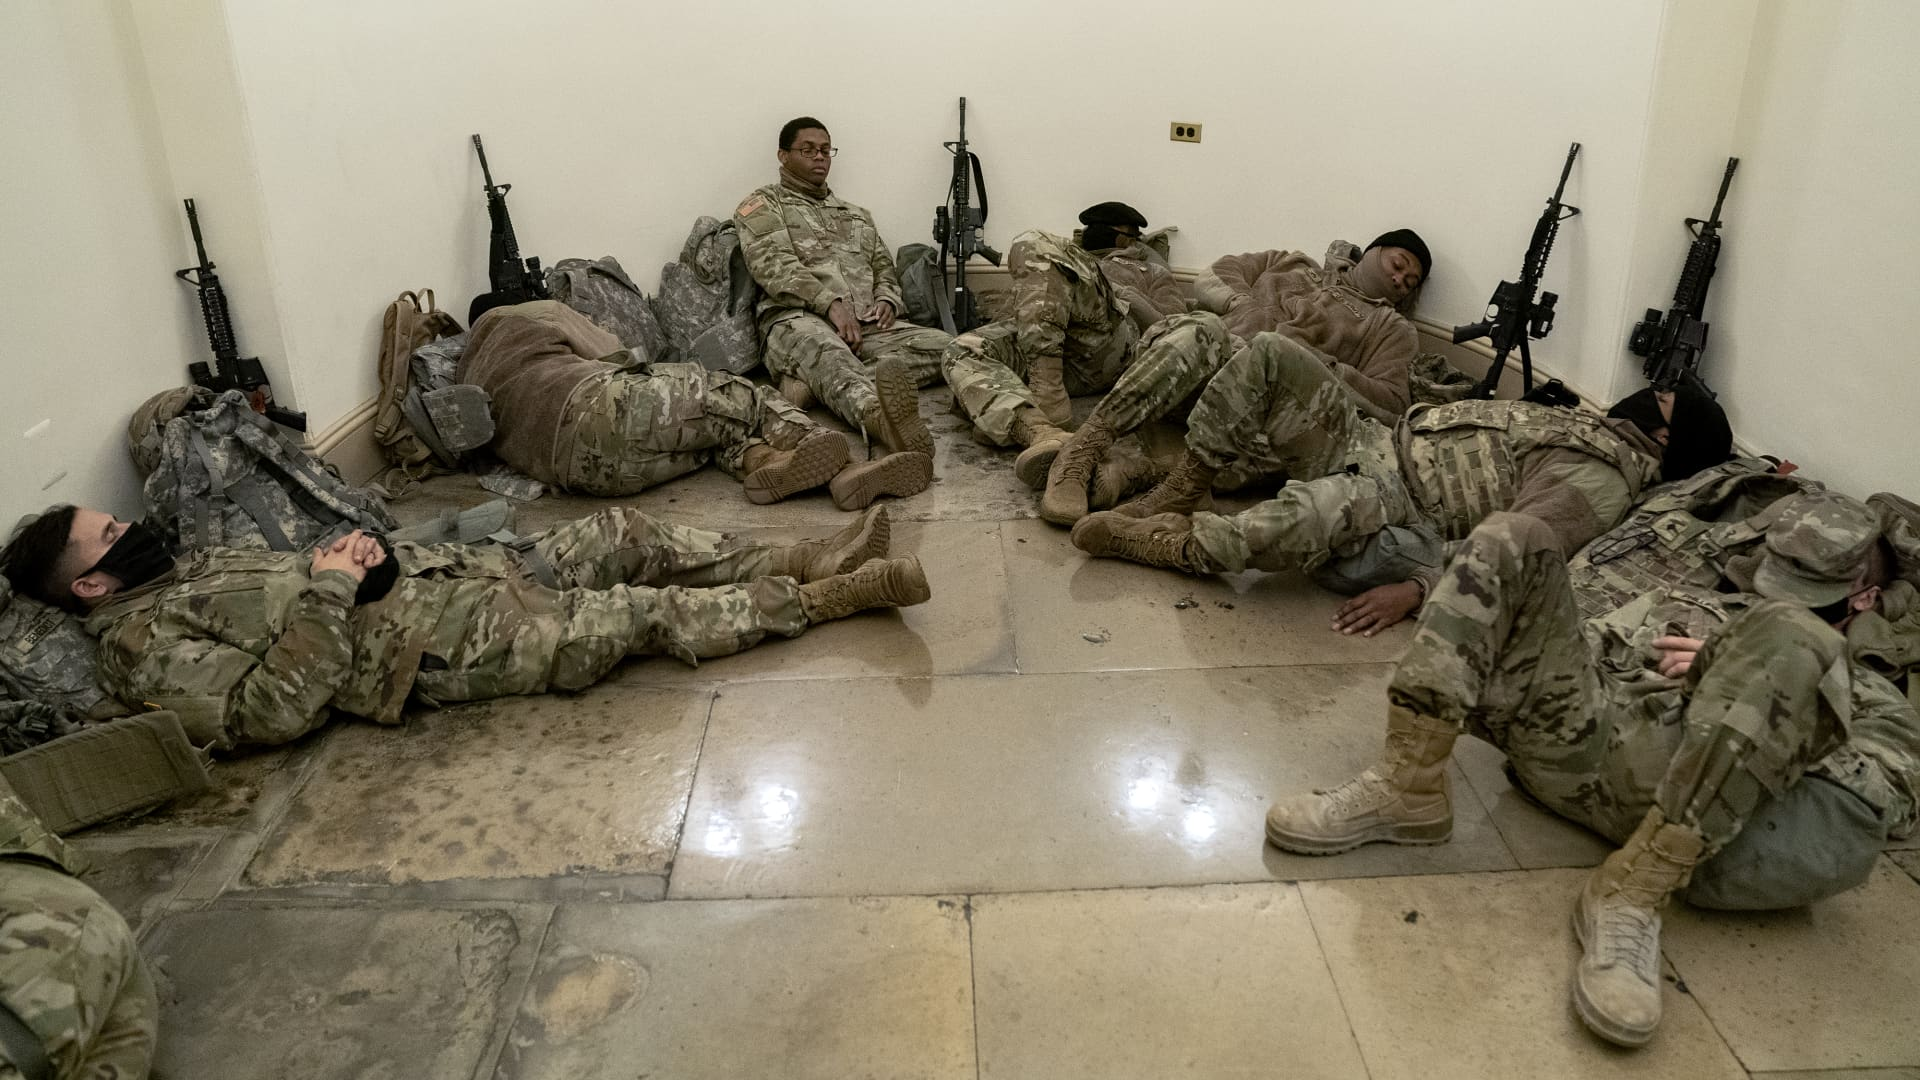 Members of the National Guard rest in the U.S. Capitol on January 13, 2021 in Washington, DC.